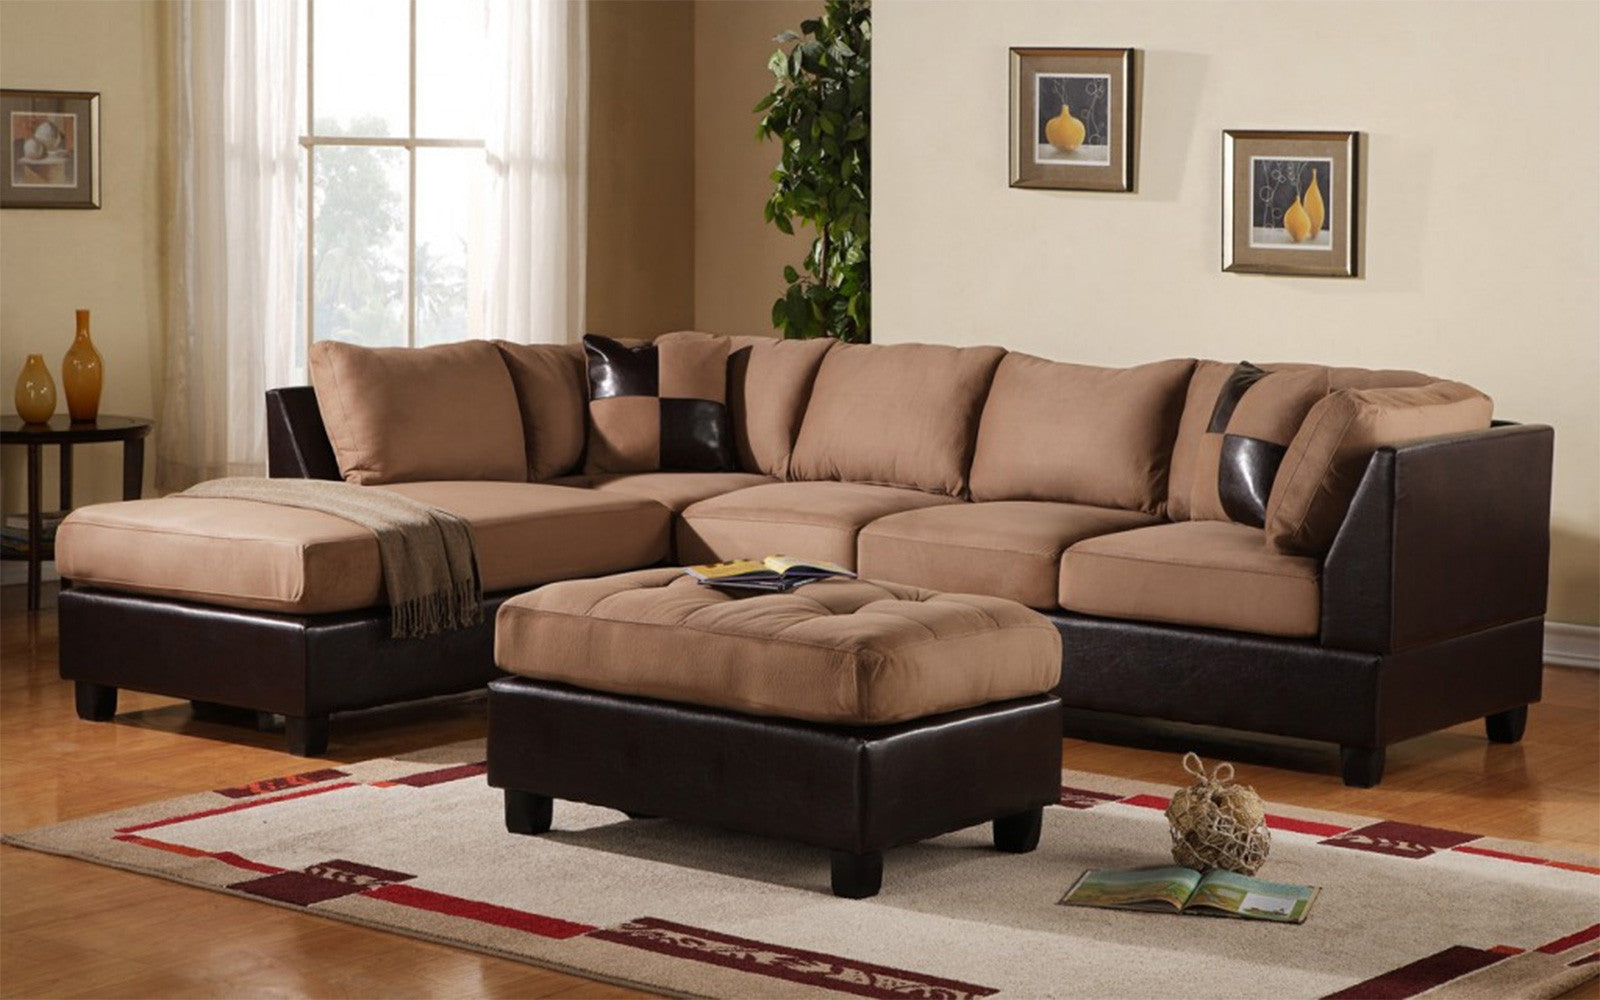 set reviews brown and frightening collection homelegance loveseat midwood for bonded chateau picture design reclining sofa dark salebonded leather